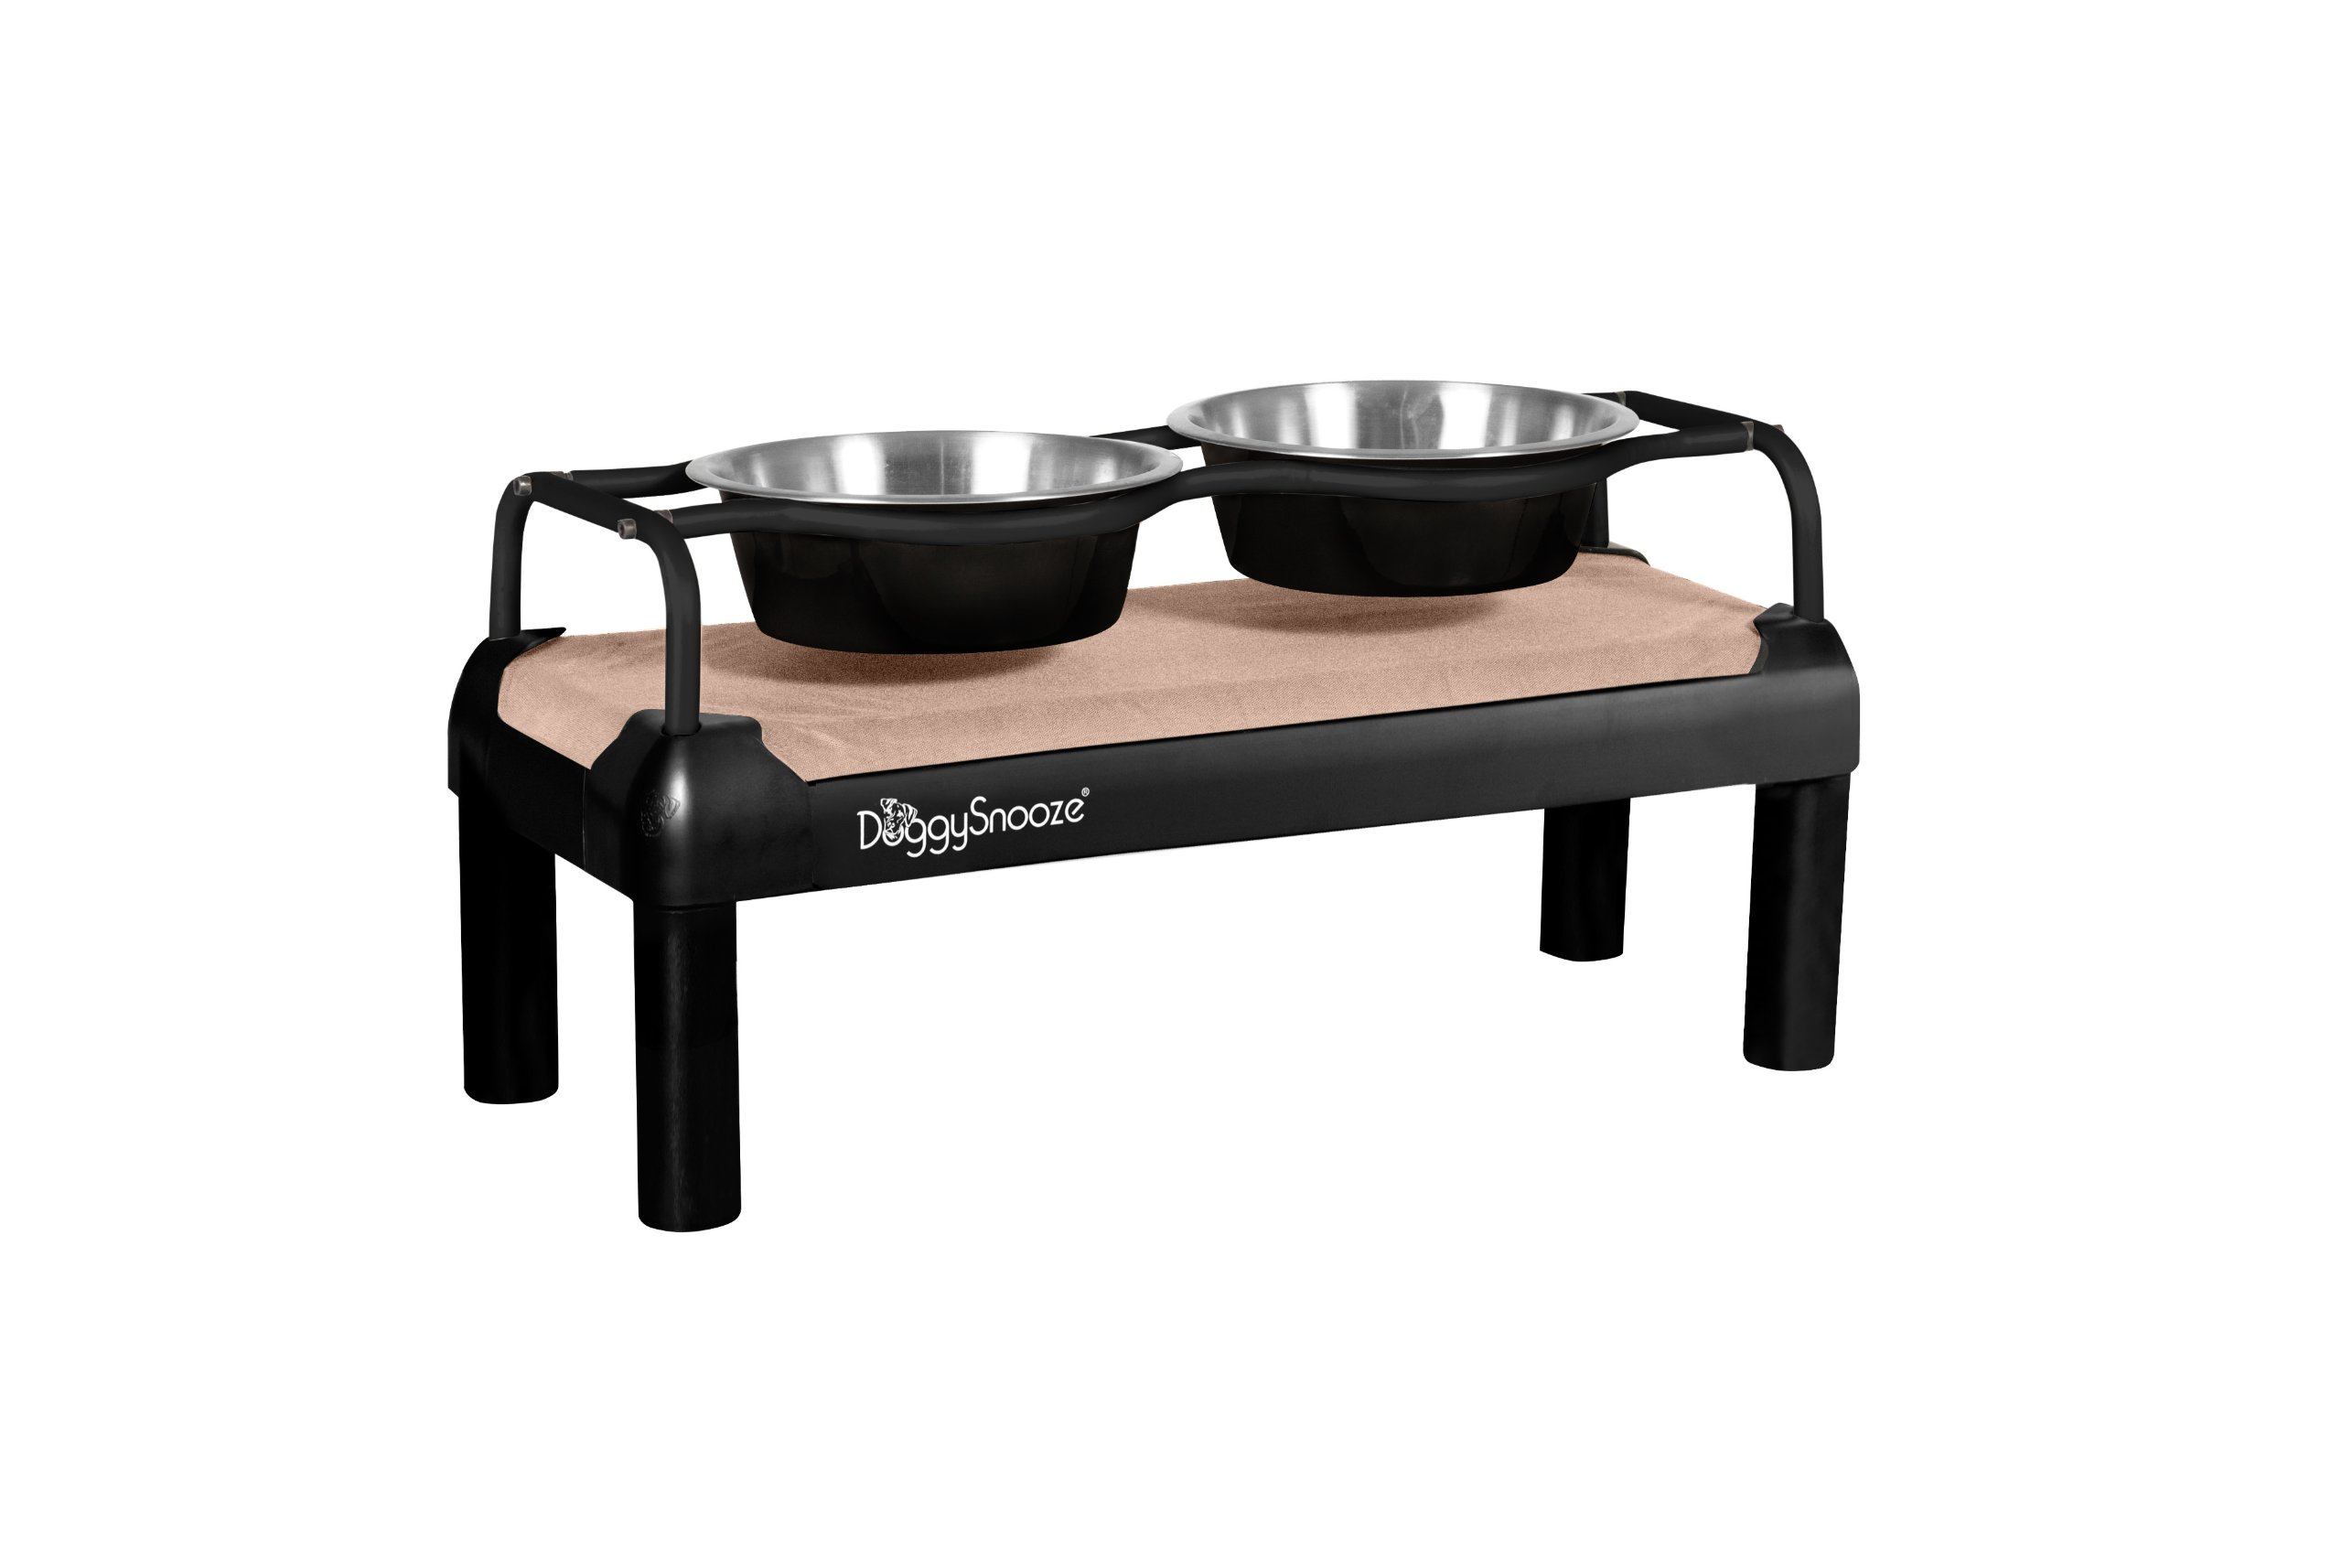 DoggySnooze Large High Diner for Dogs, Sand with Black Frame